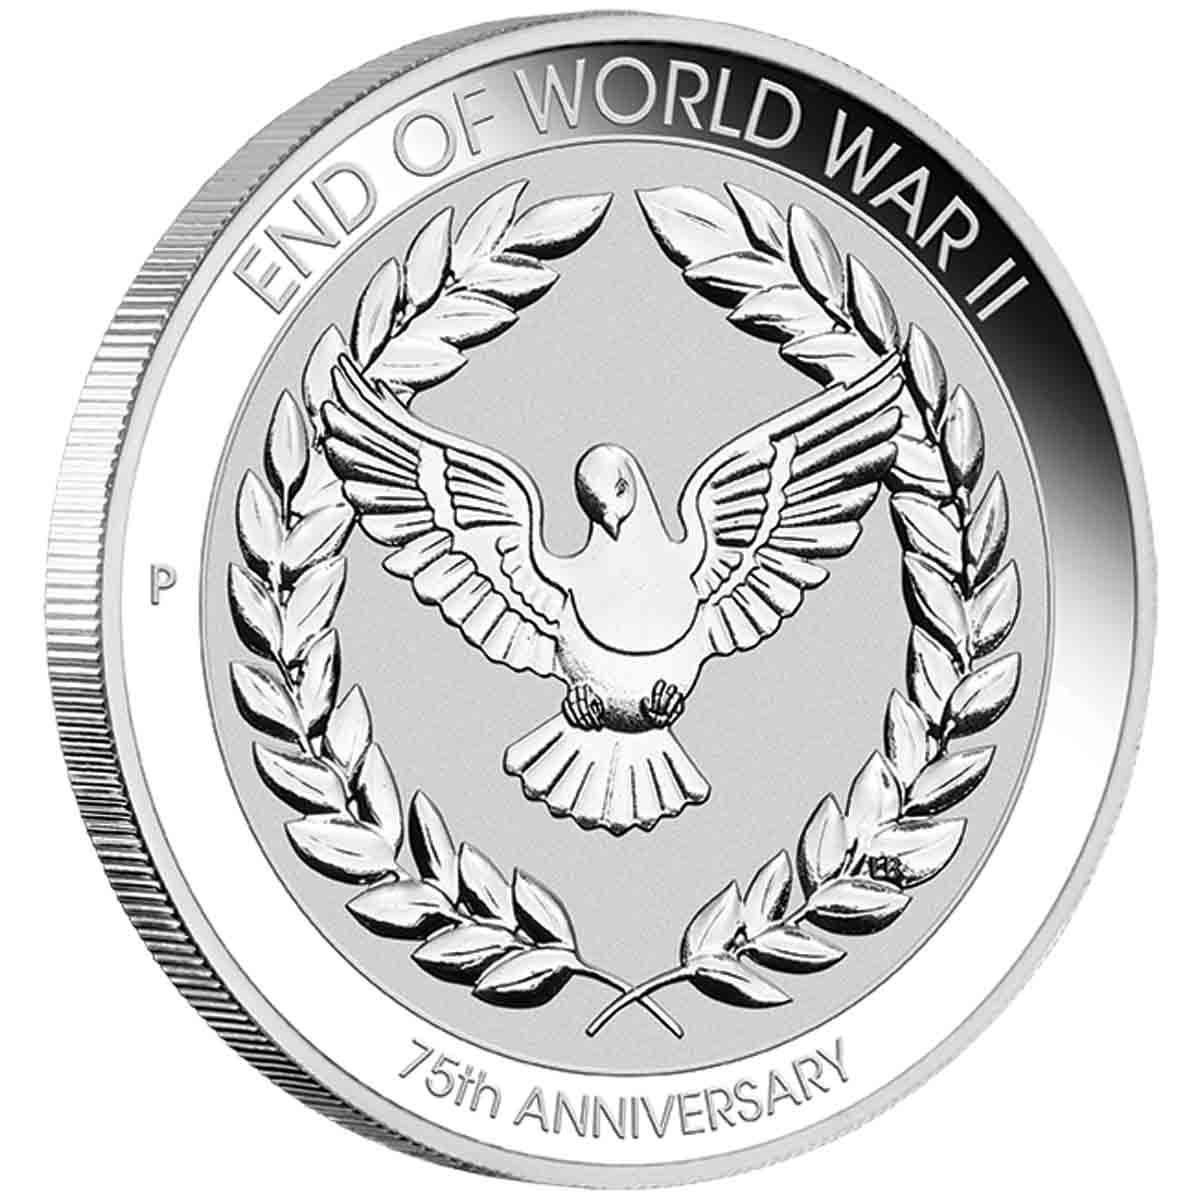 2020 END OF WORLD WAR ll 75th ANNIVERSARY 10 CENTS Coin